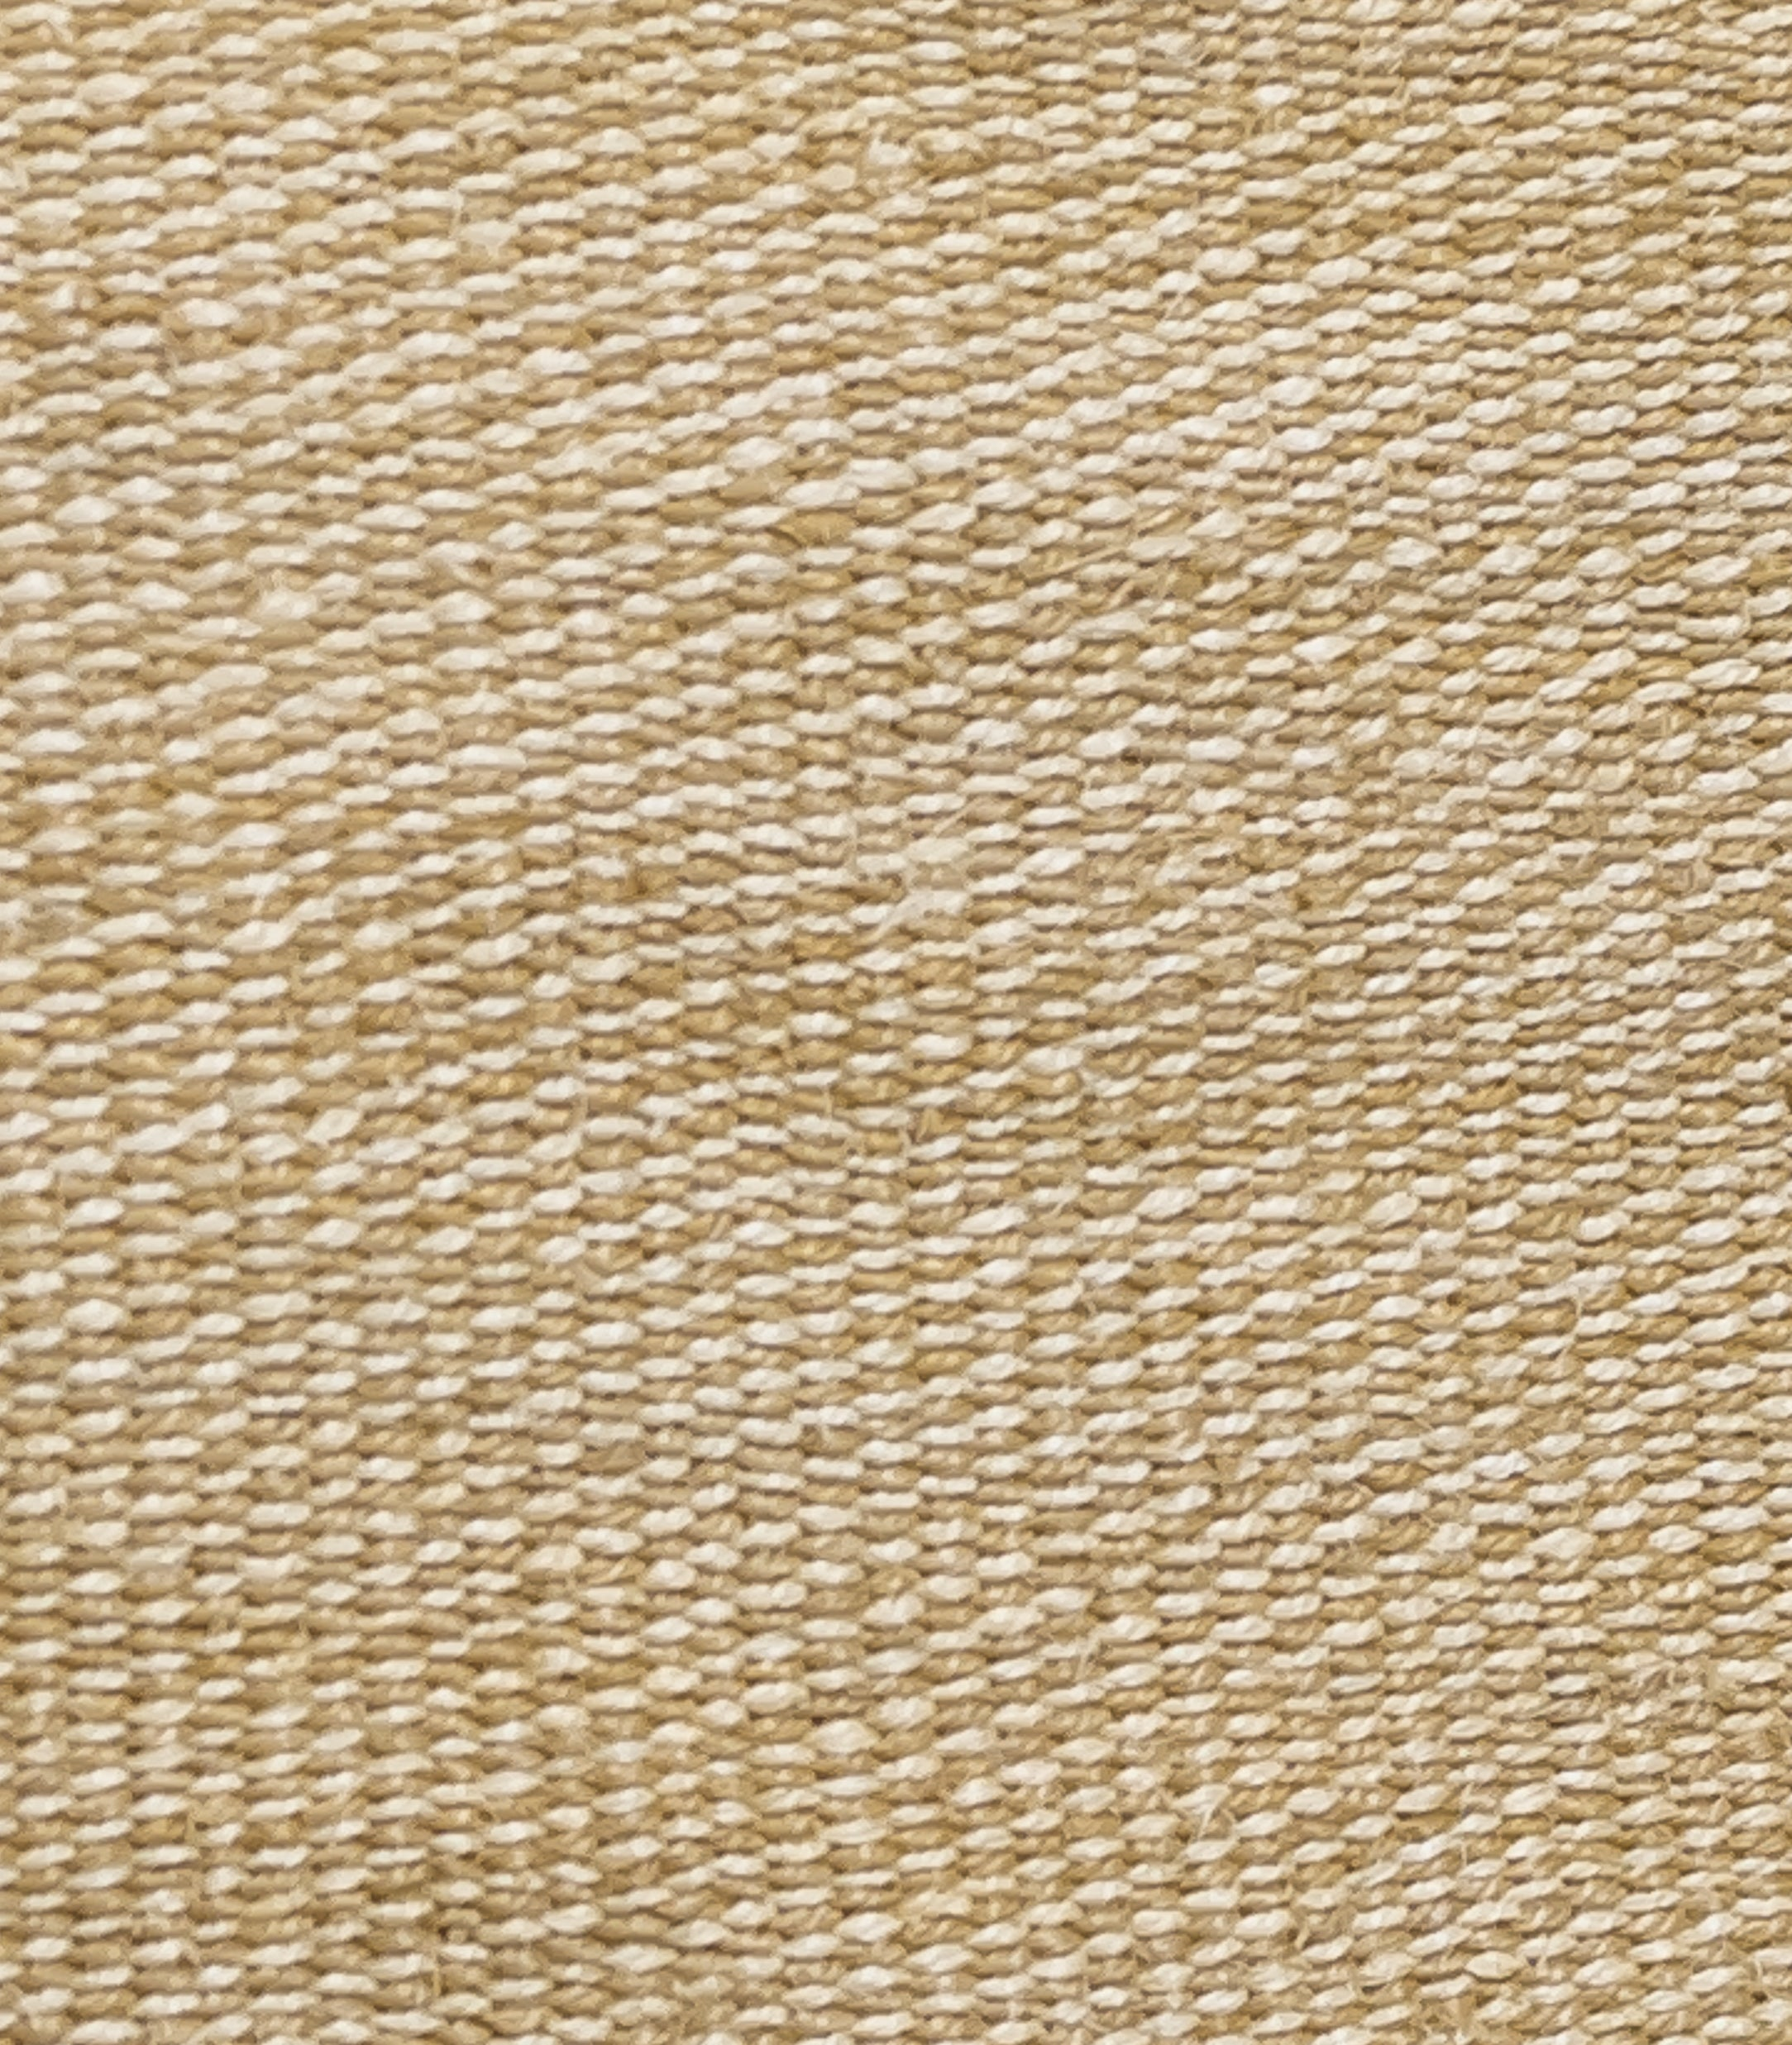 Rima Shop - Natural Sisal Handmade Basket